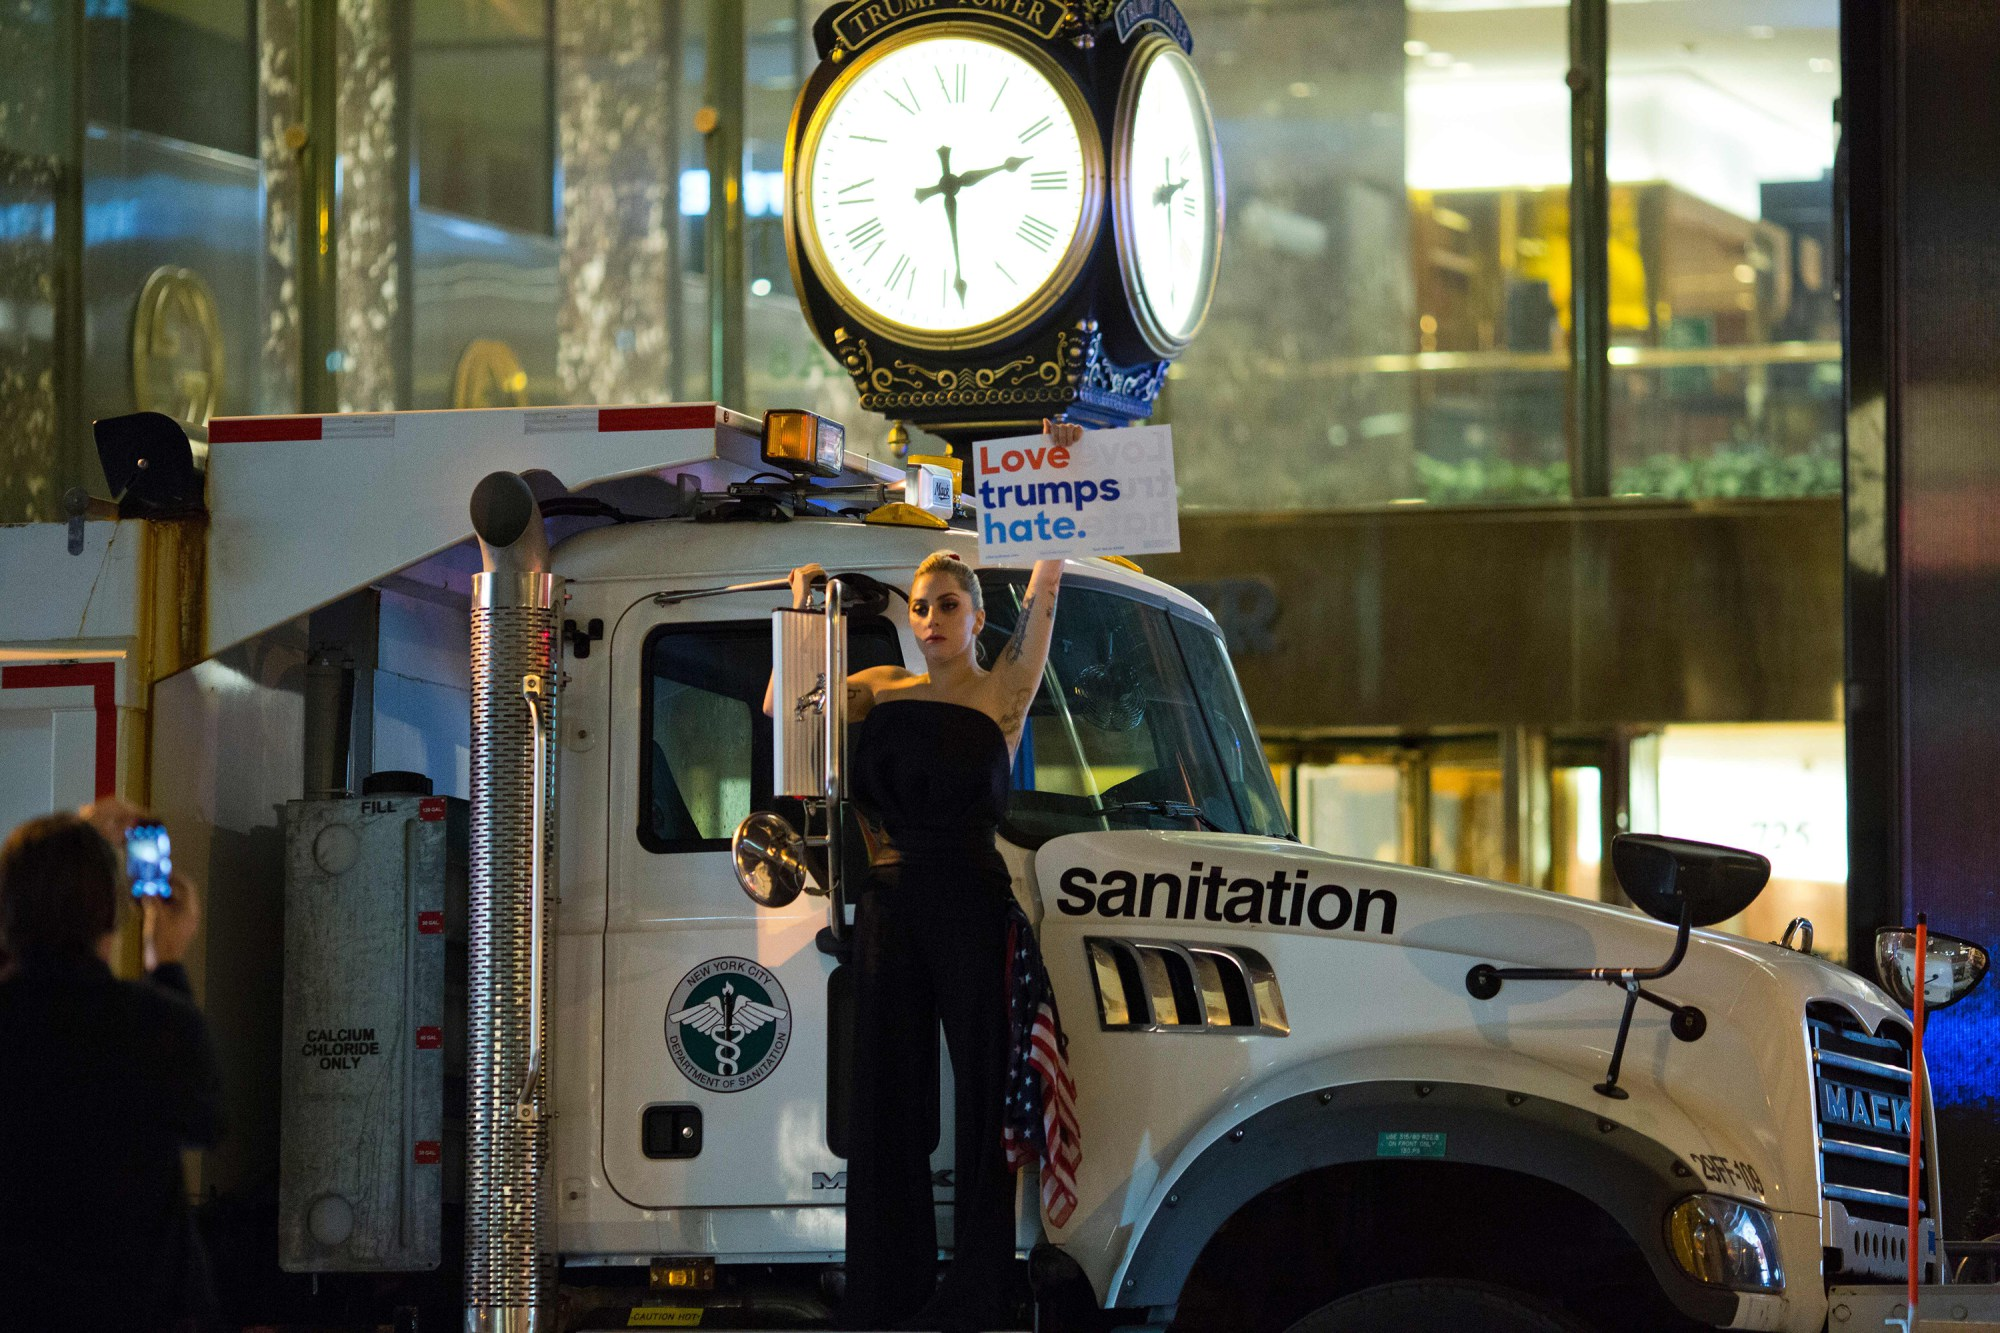 Lady Gaga stages a protest against Donald Trump on a sanitation truck outside Trump Tower in New York City after midnight on election day November 9, 2016. Photo source: AFP.